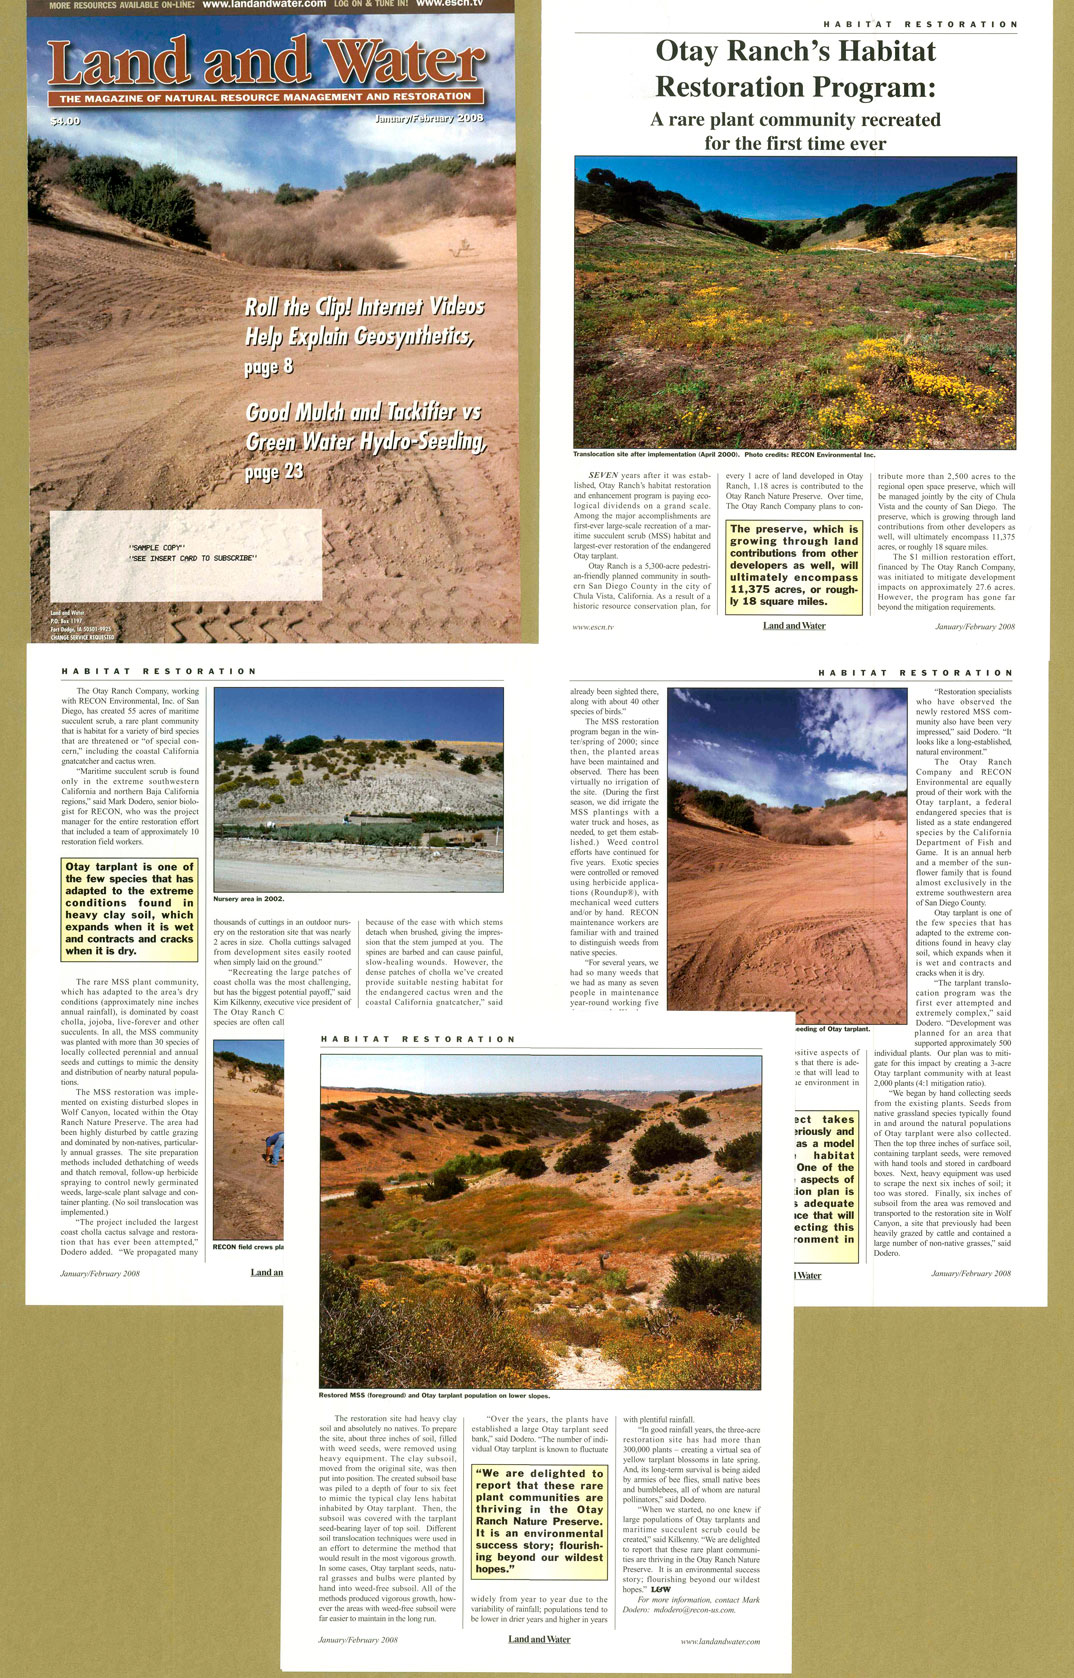 Land and Water Magazine - Otay Ranch article